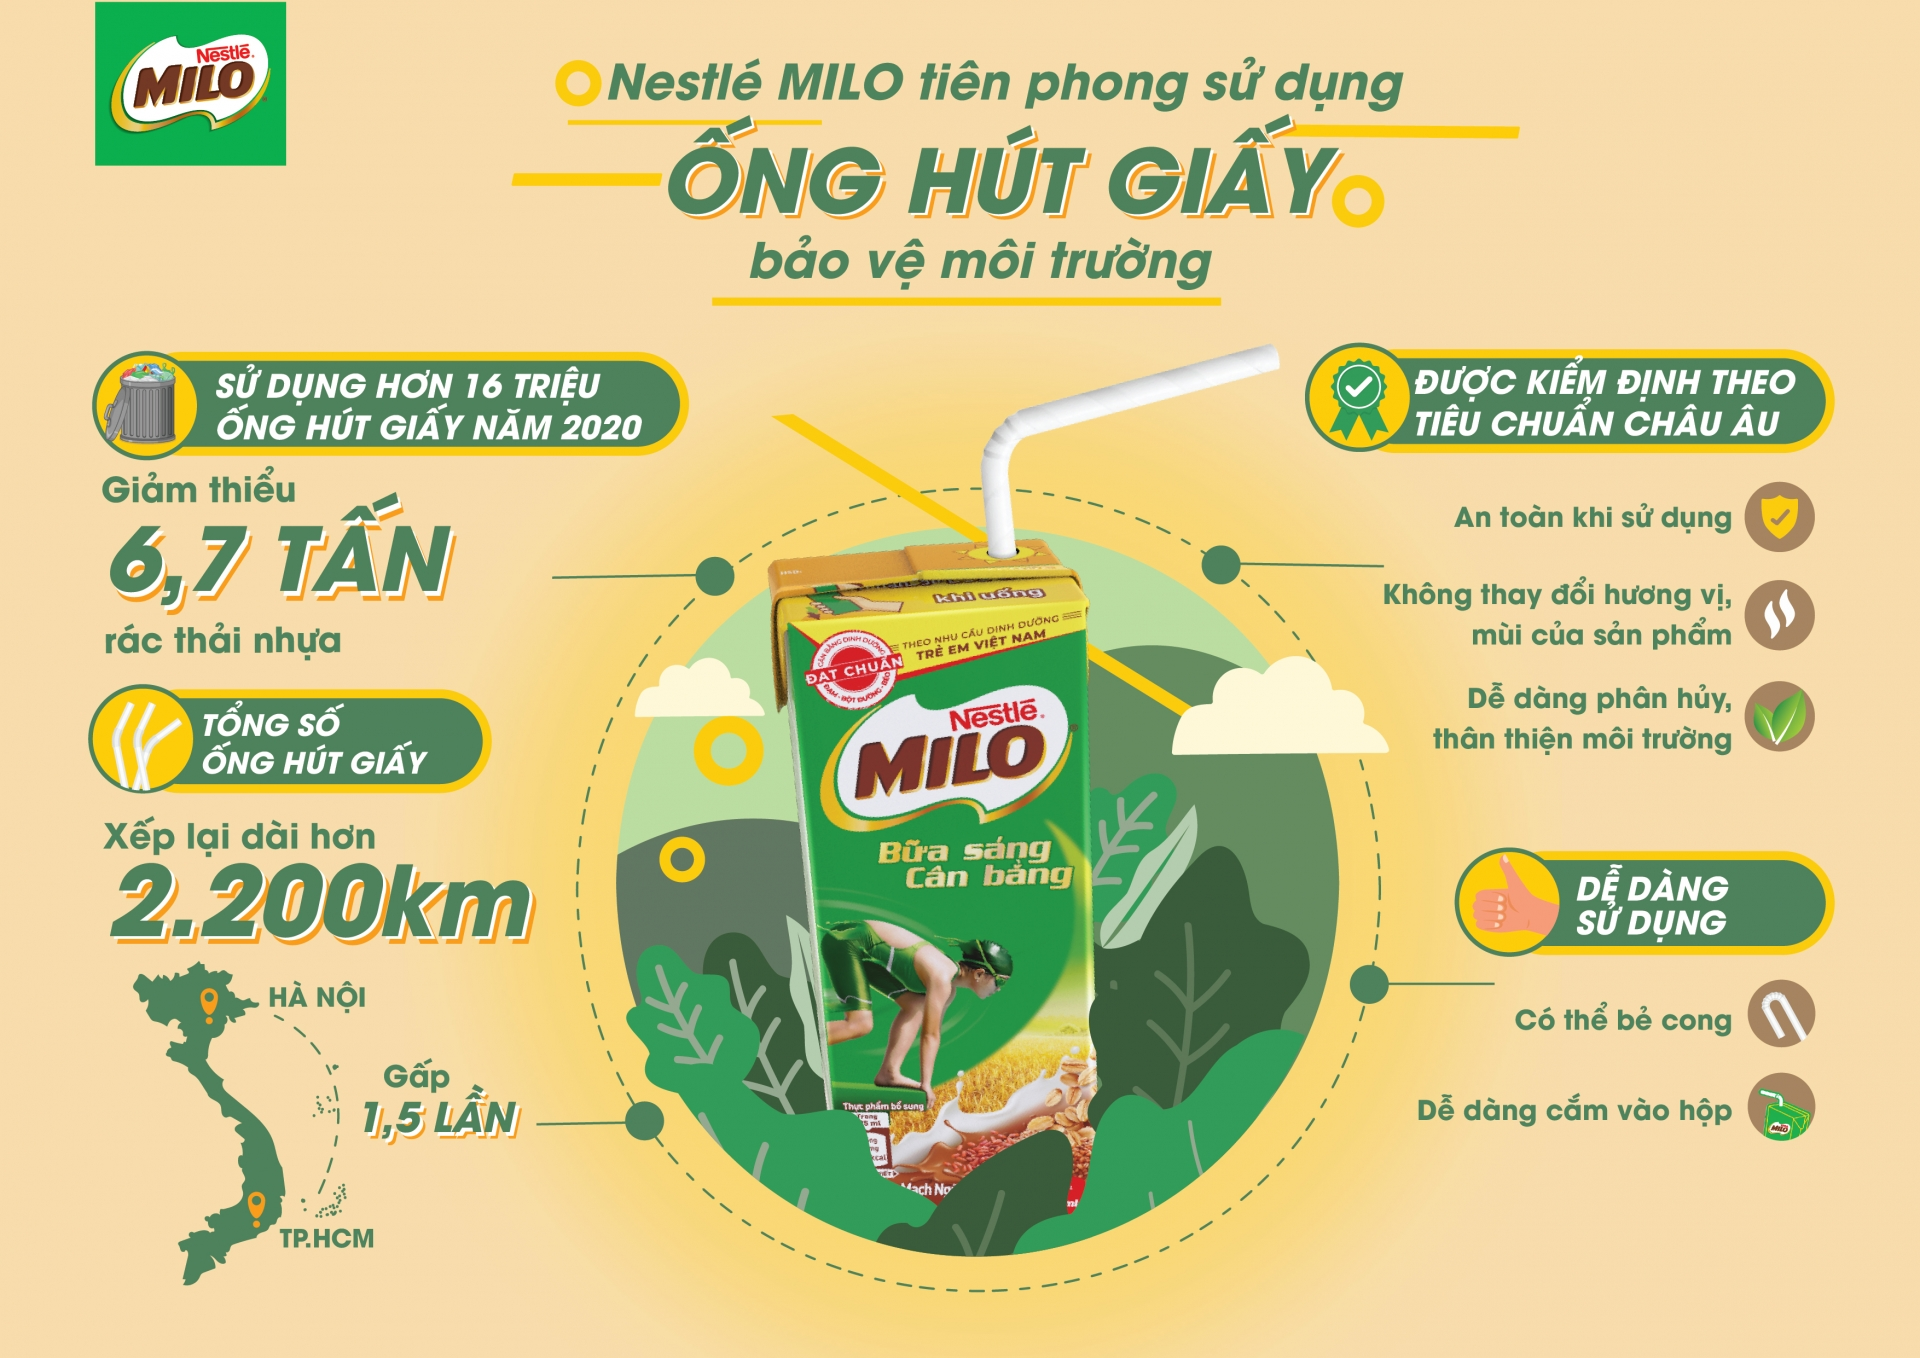 nestle milo launches paper straws for milo breakfast drink to promote green consumption trends